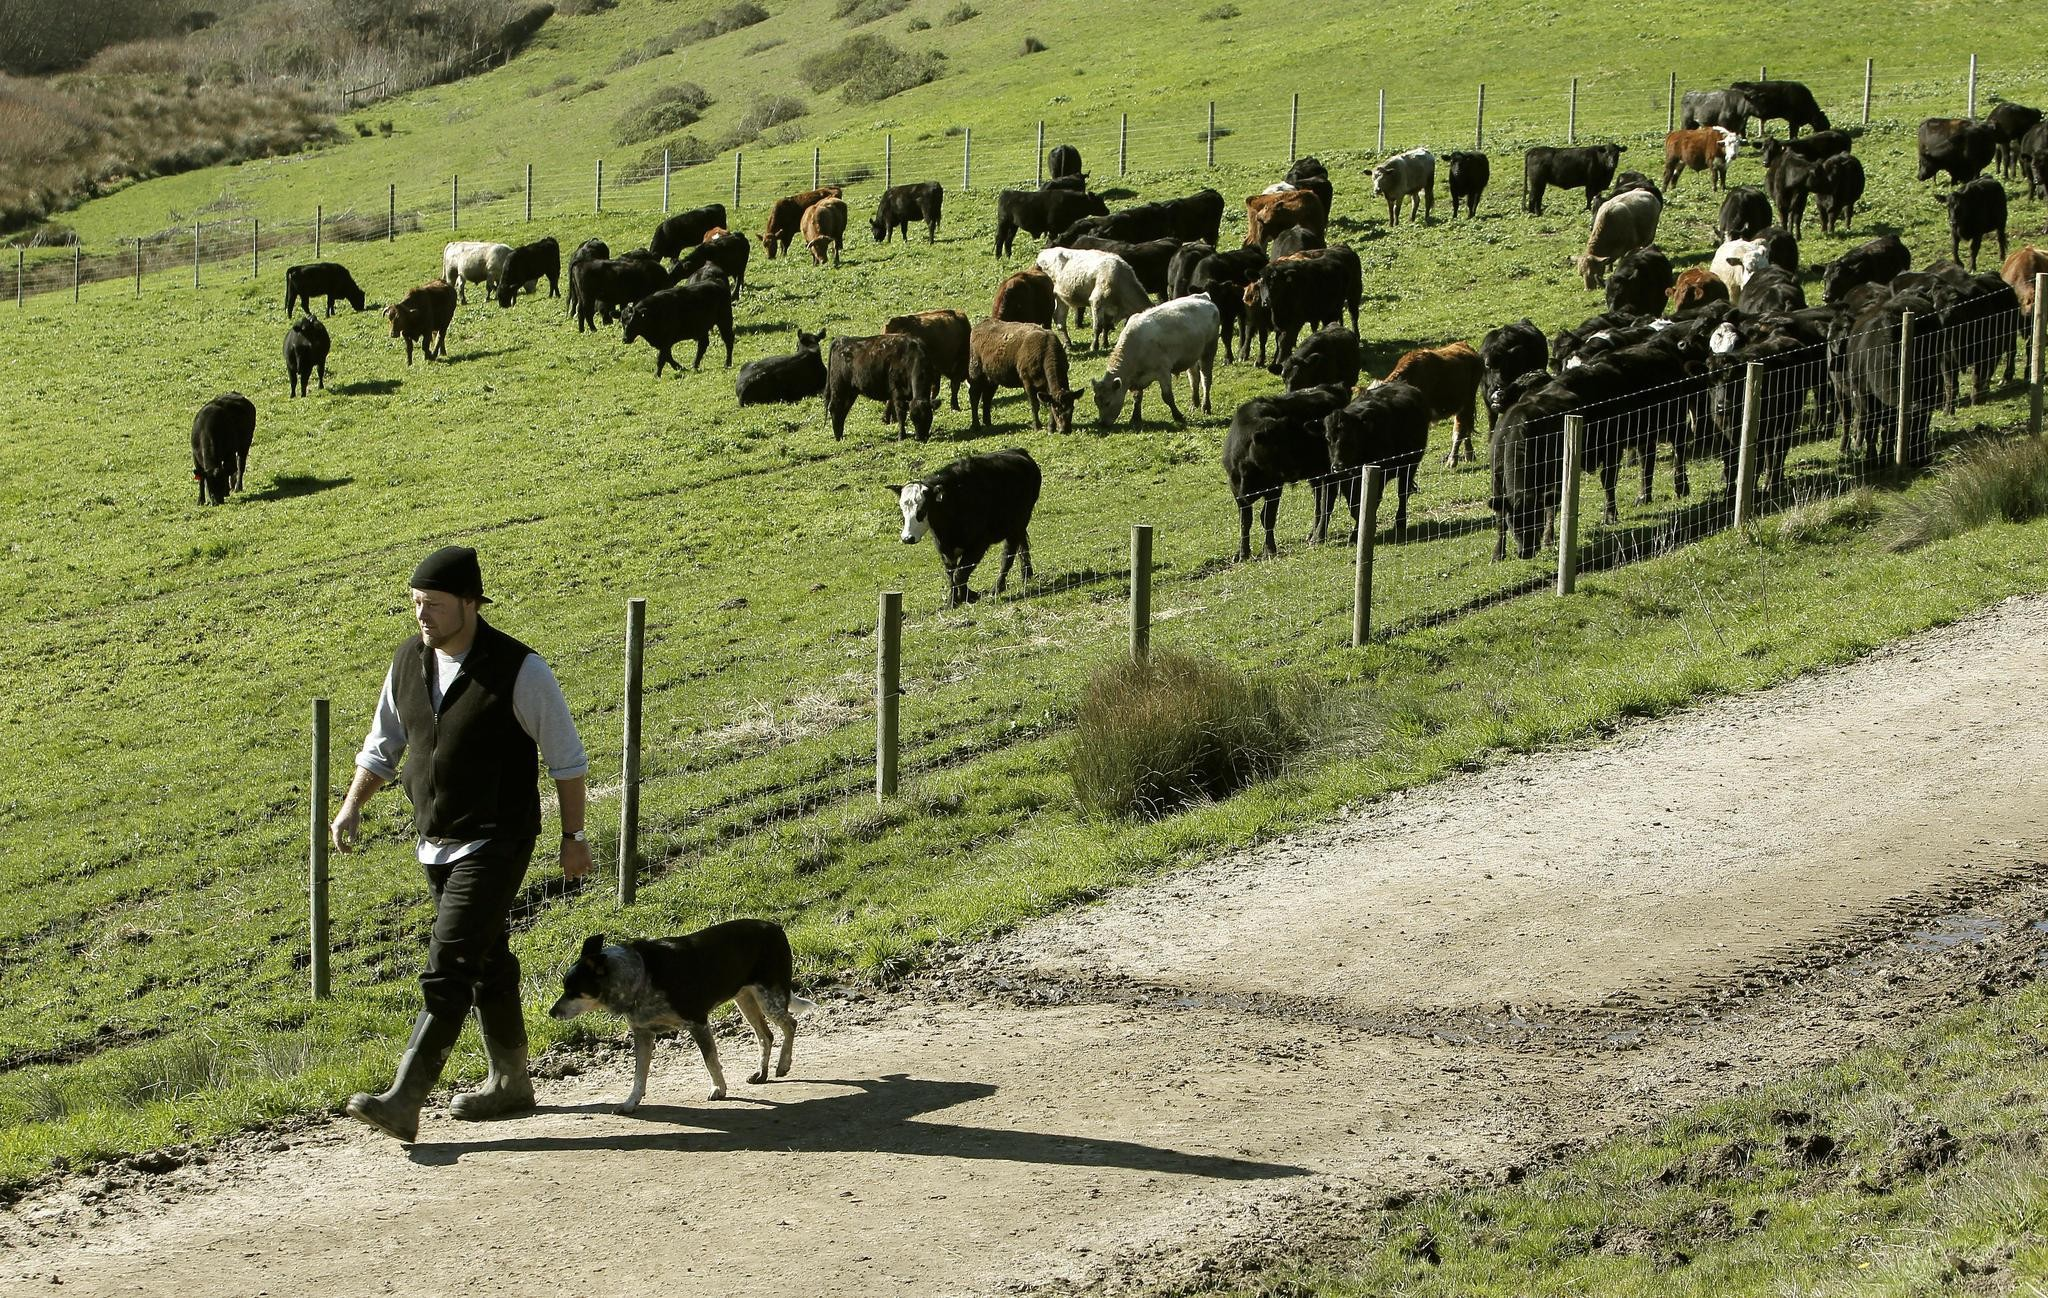 4th generation cattle rancher David Evans tends to his cattle he raises on his Marin Sun Farms, on Thursday Jan, 20, 2011, which is inside the Point Reyes National Seashore.